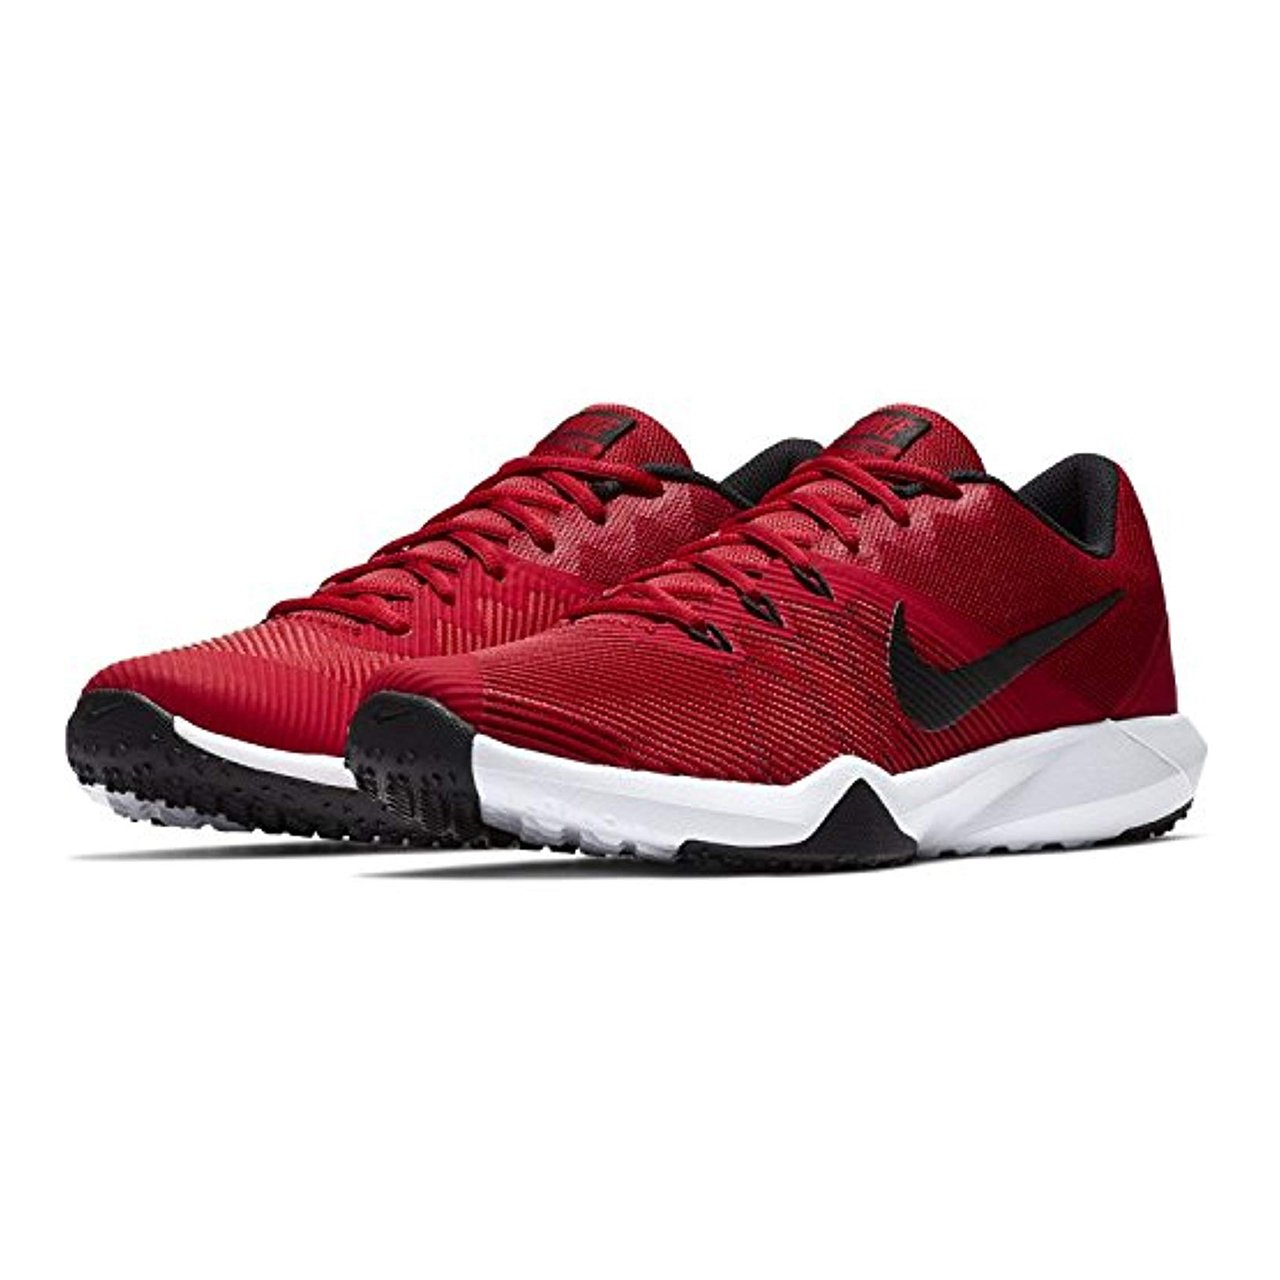 the best attitude 8e169 9c3ed Galleon - NIKE Men s Retaliation TR Training Shoes Gym Red Size 10 US